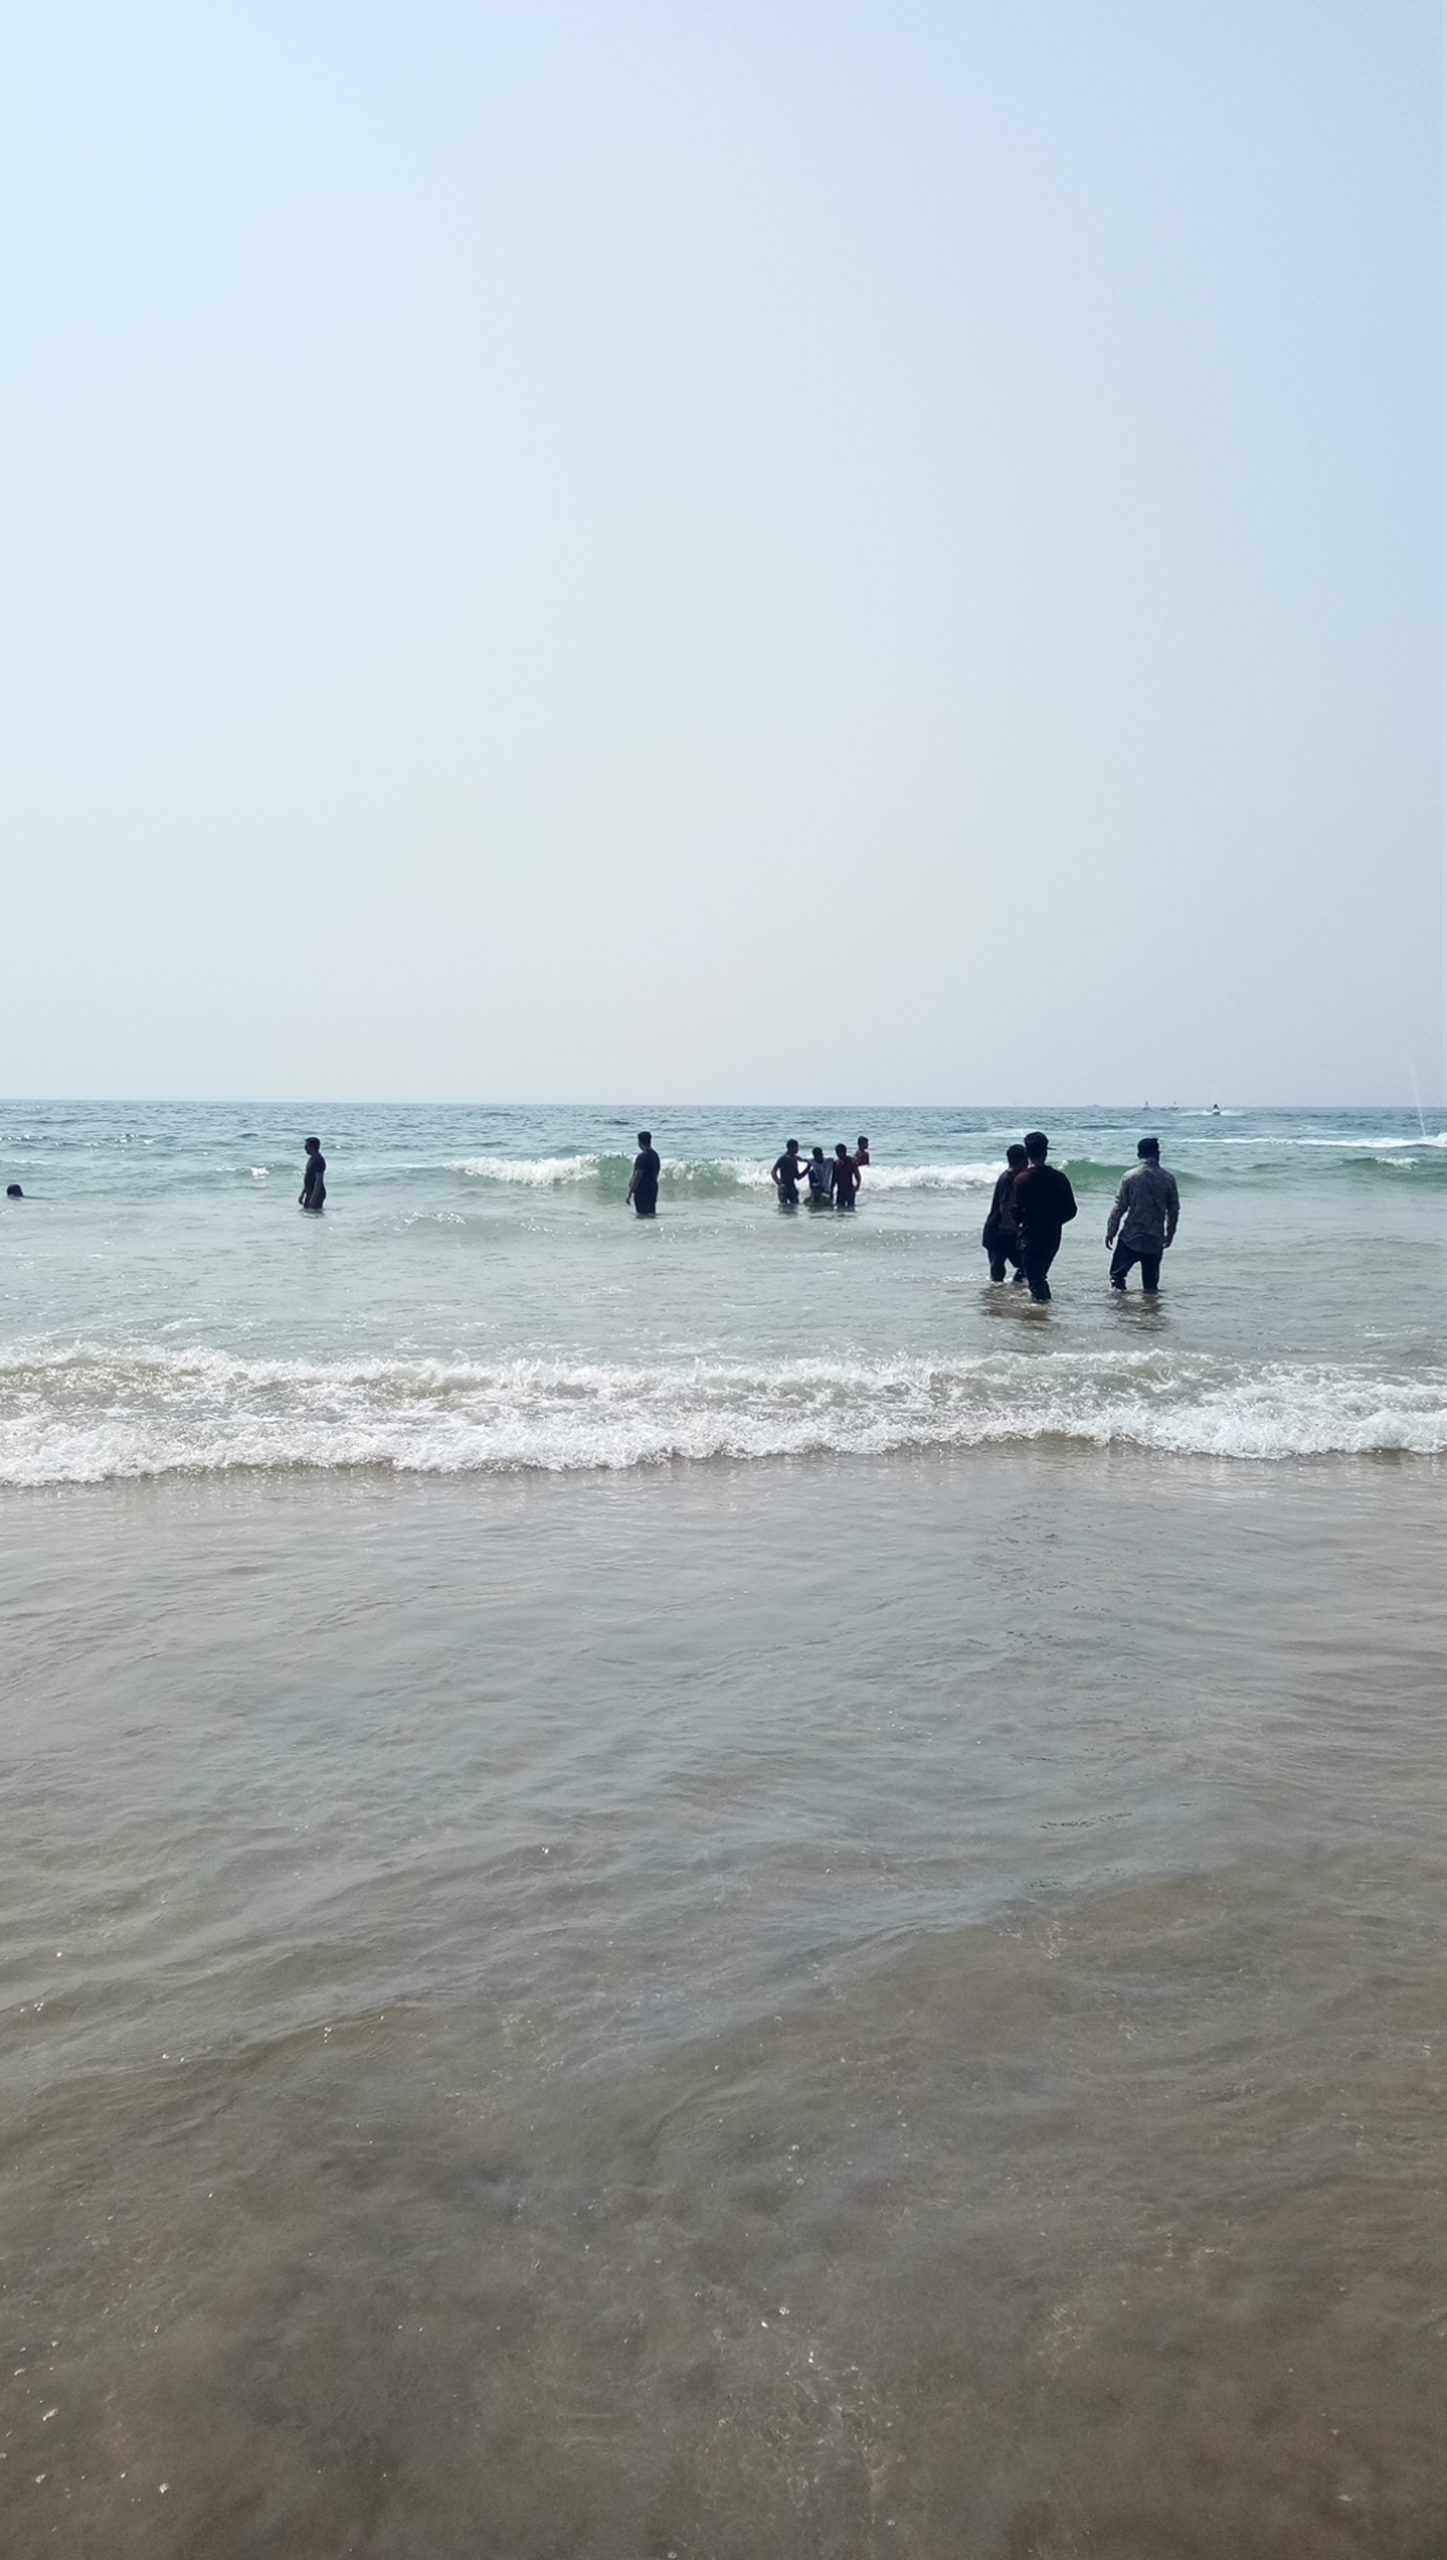 People enjoying water waves on beach